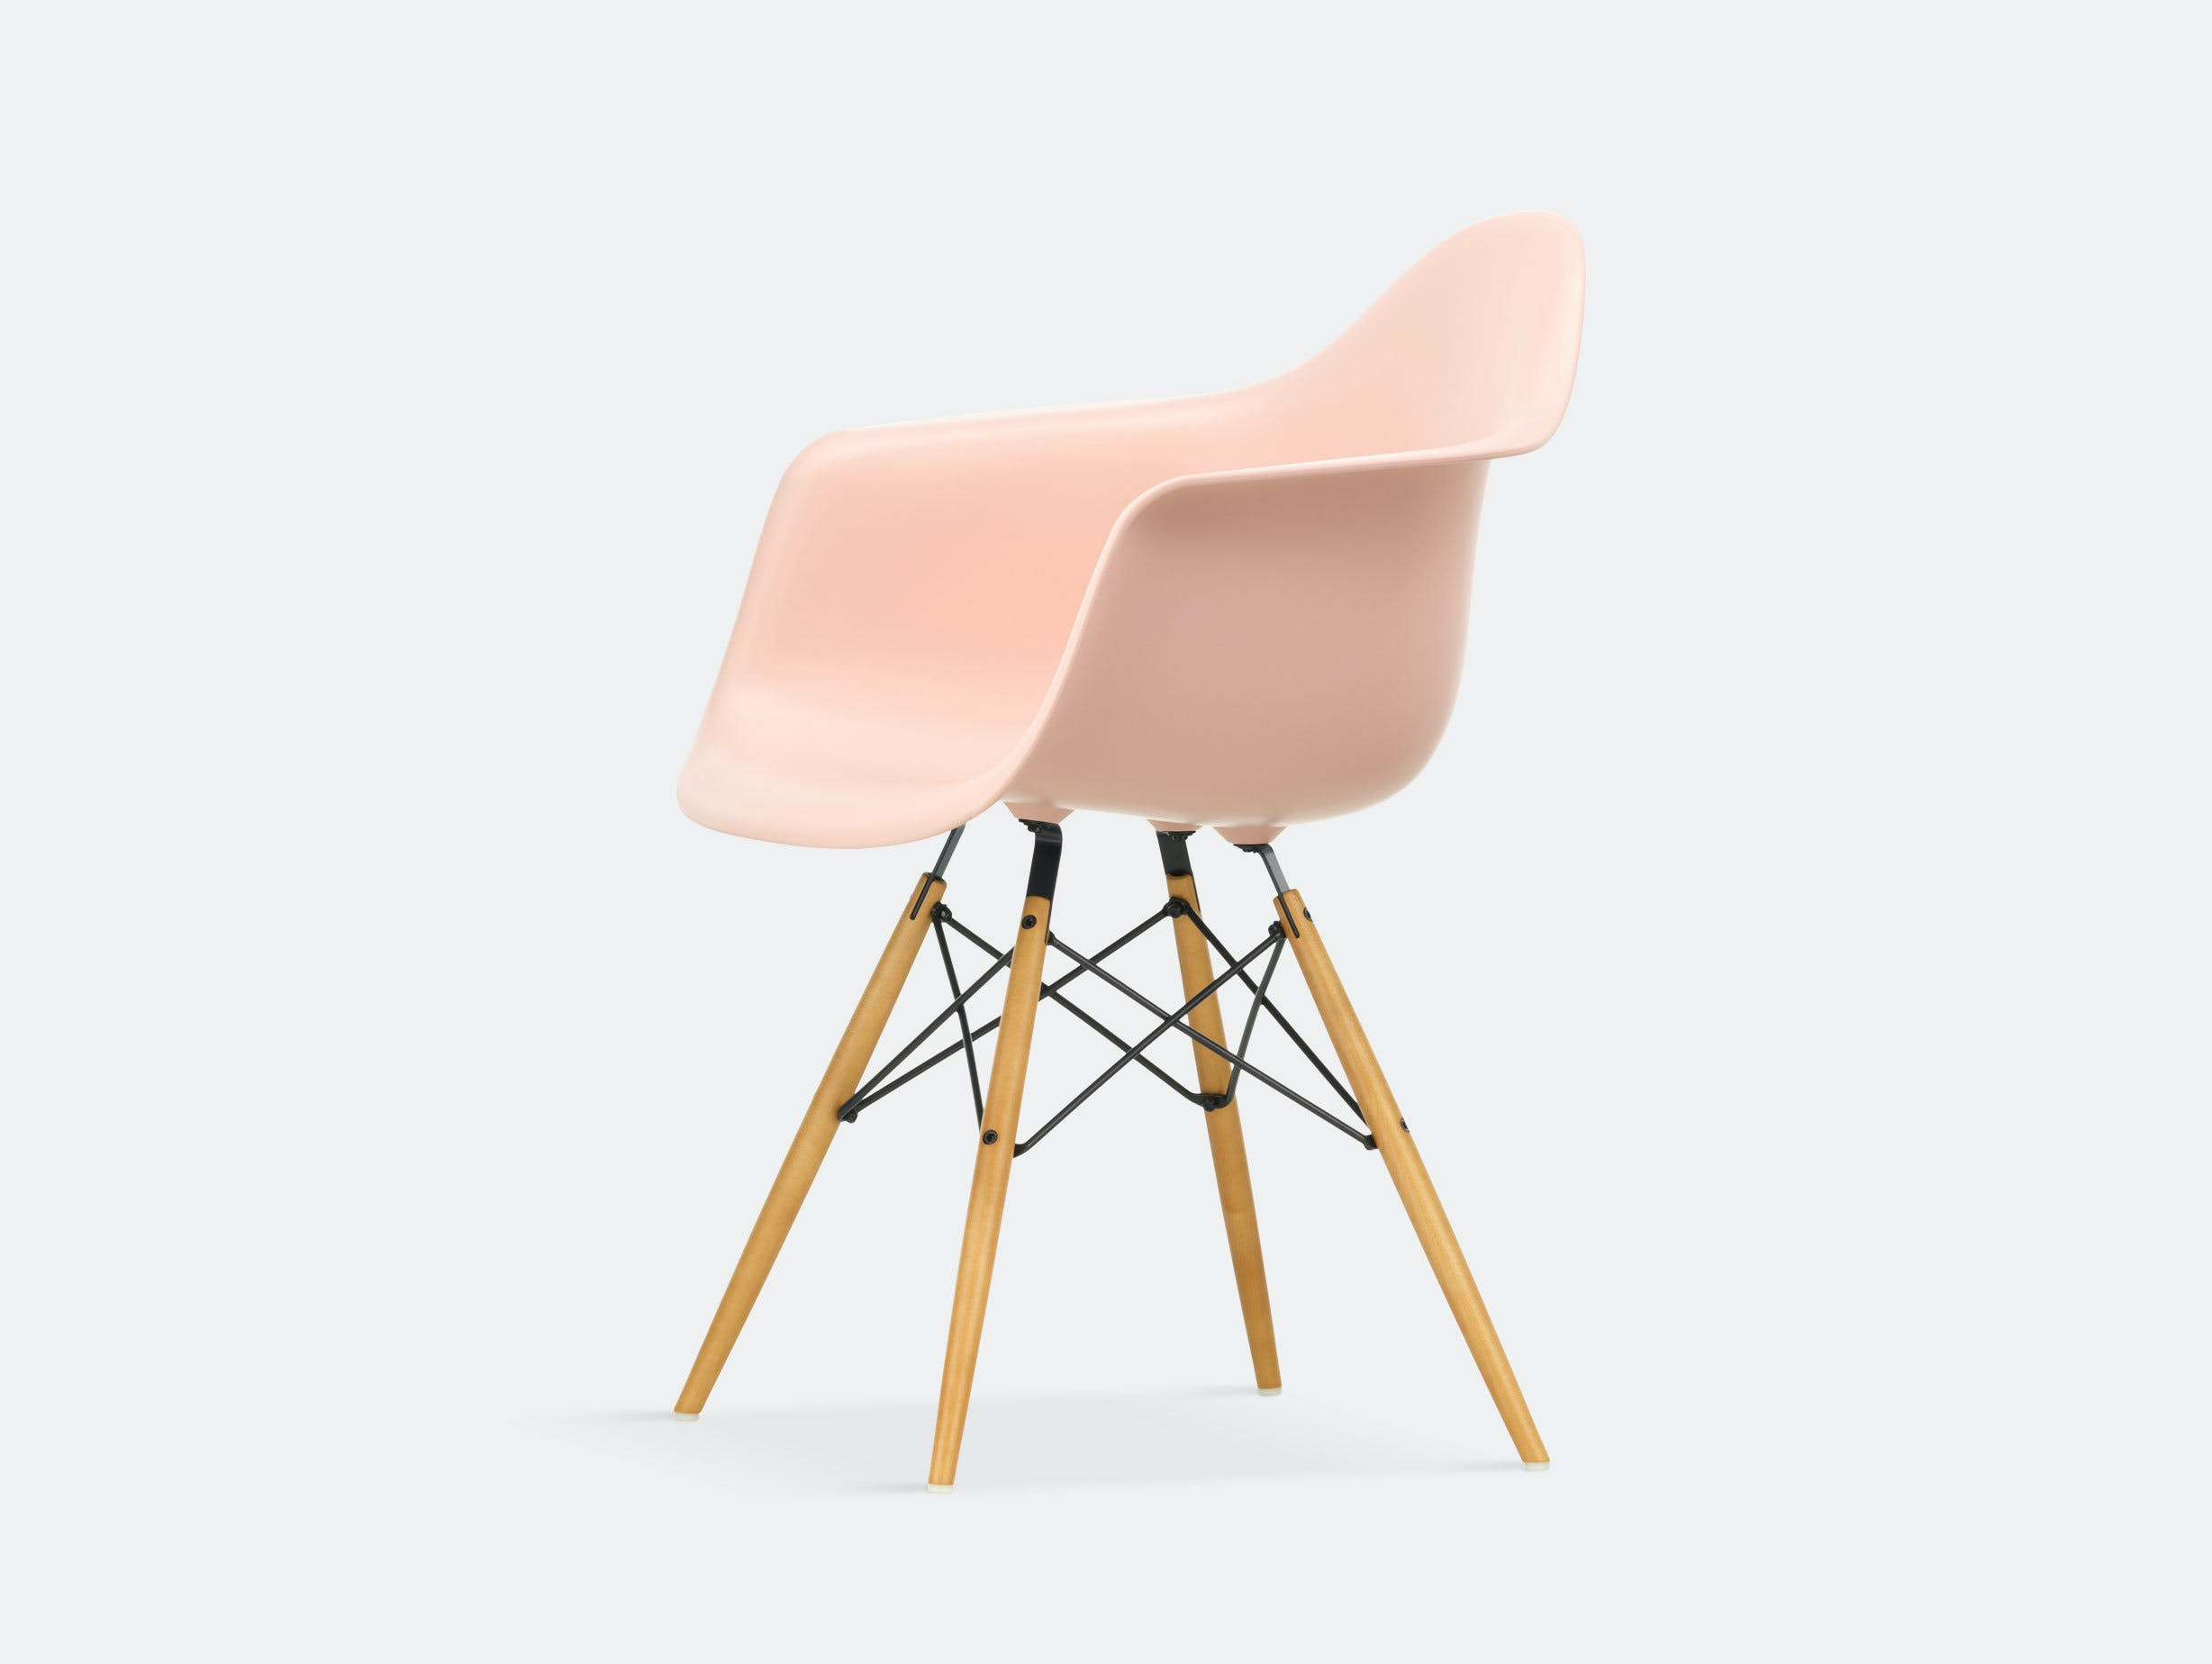 Vitra Eames Plastic Armchair DAW pale rose golden maple legs